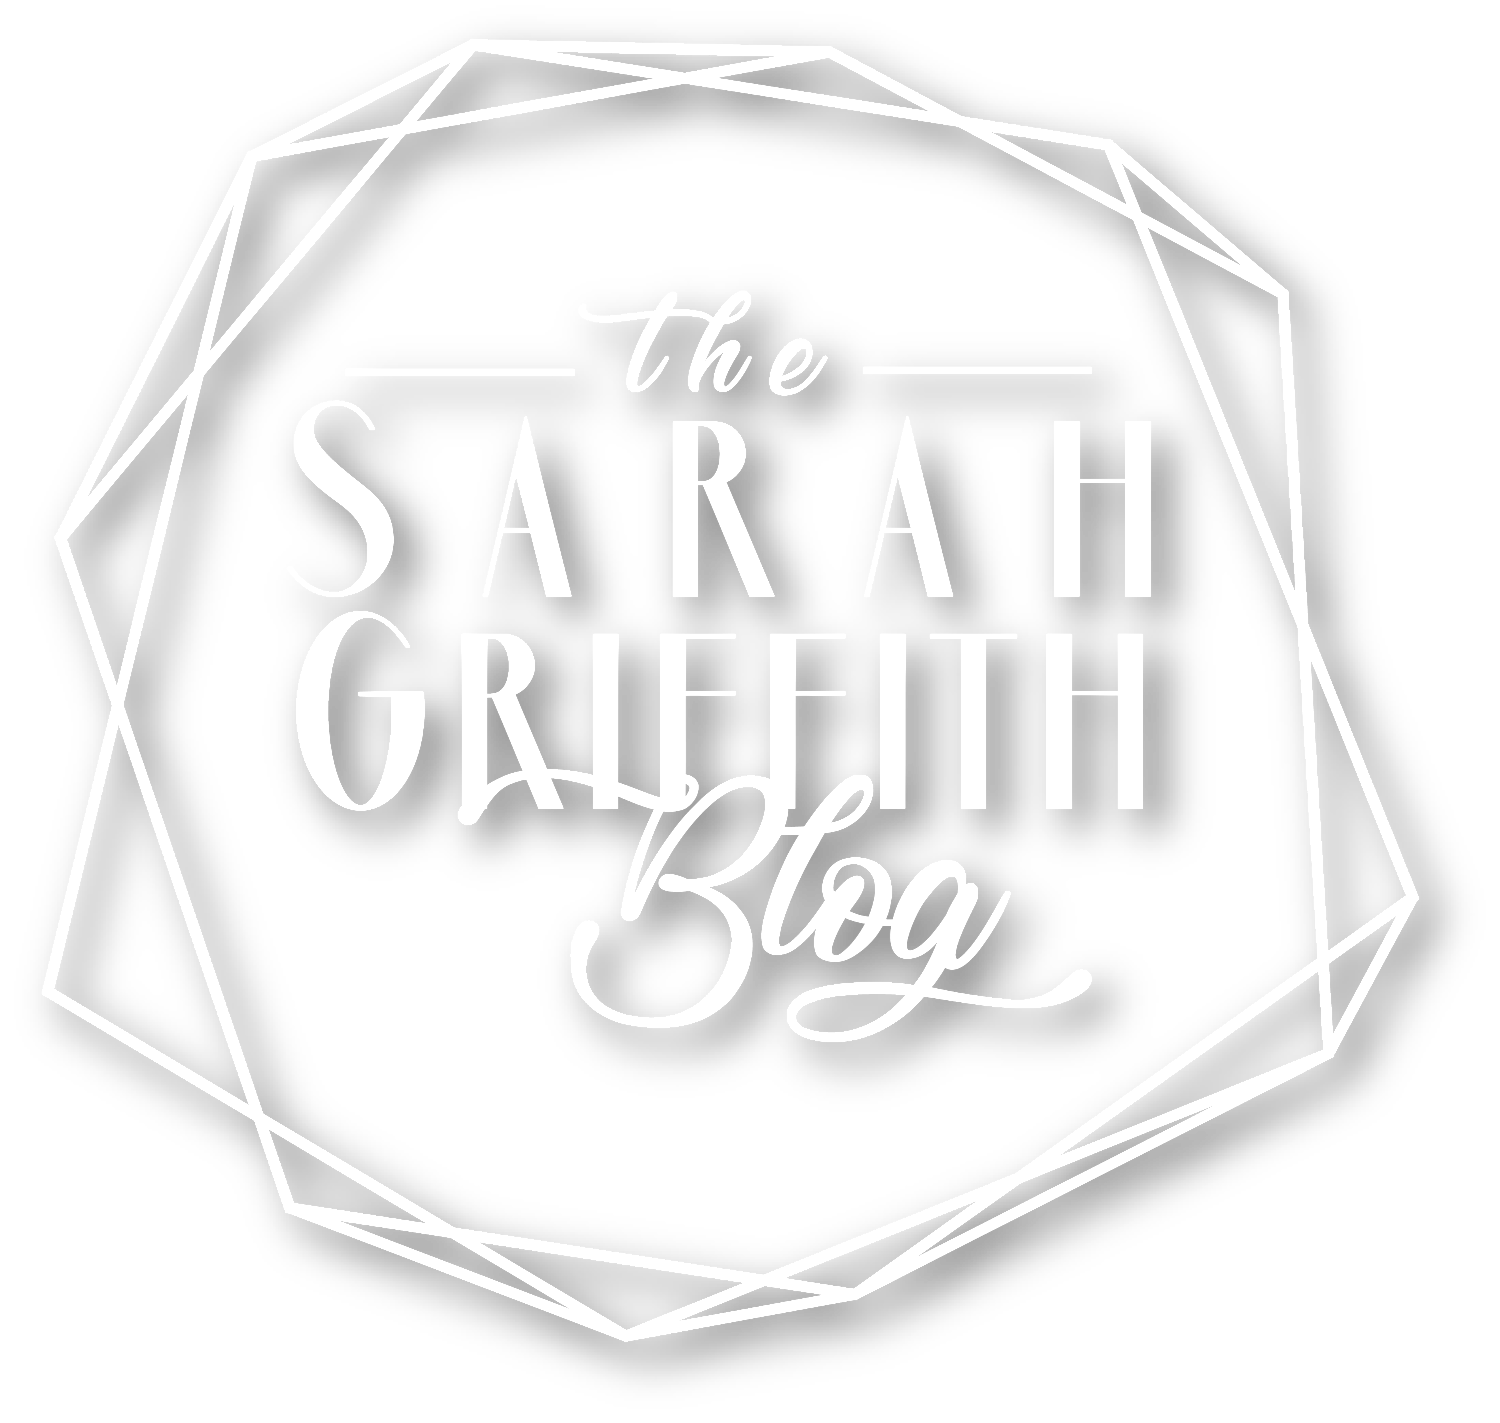 The Sarah Griffith Blog